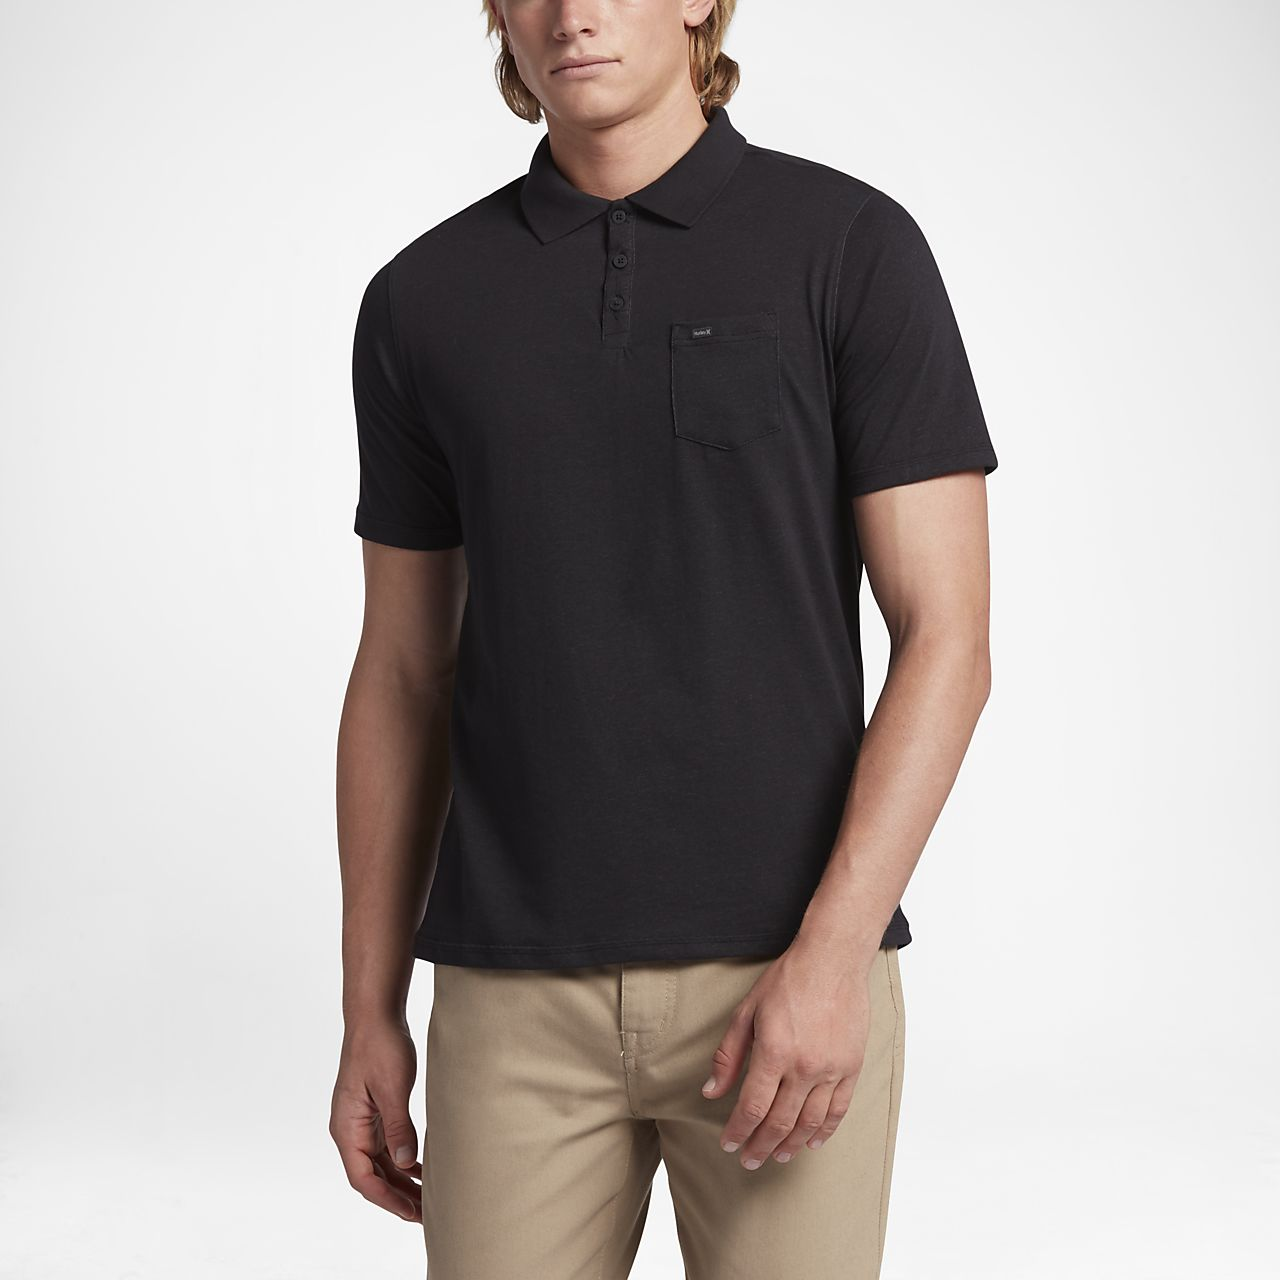 Hurley Polo Dri Fit Lagos Black